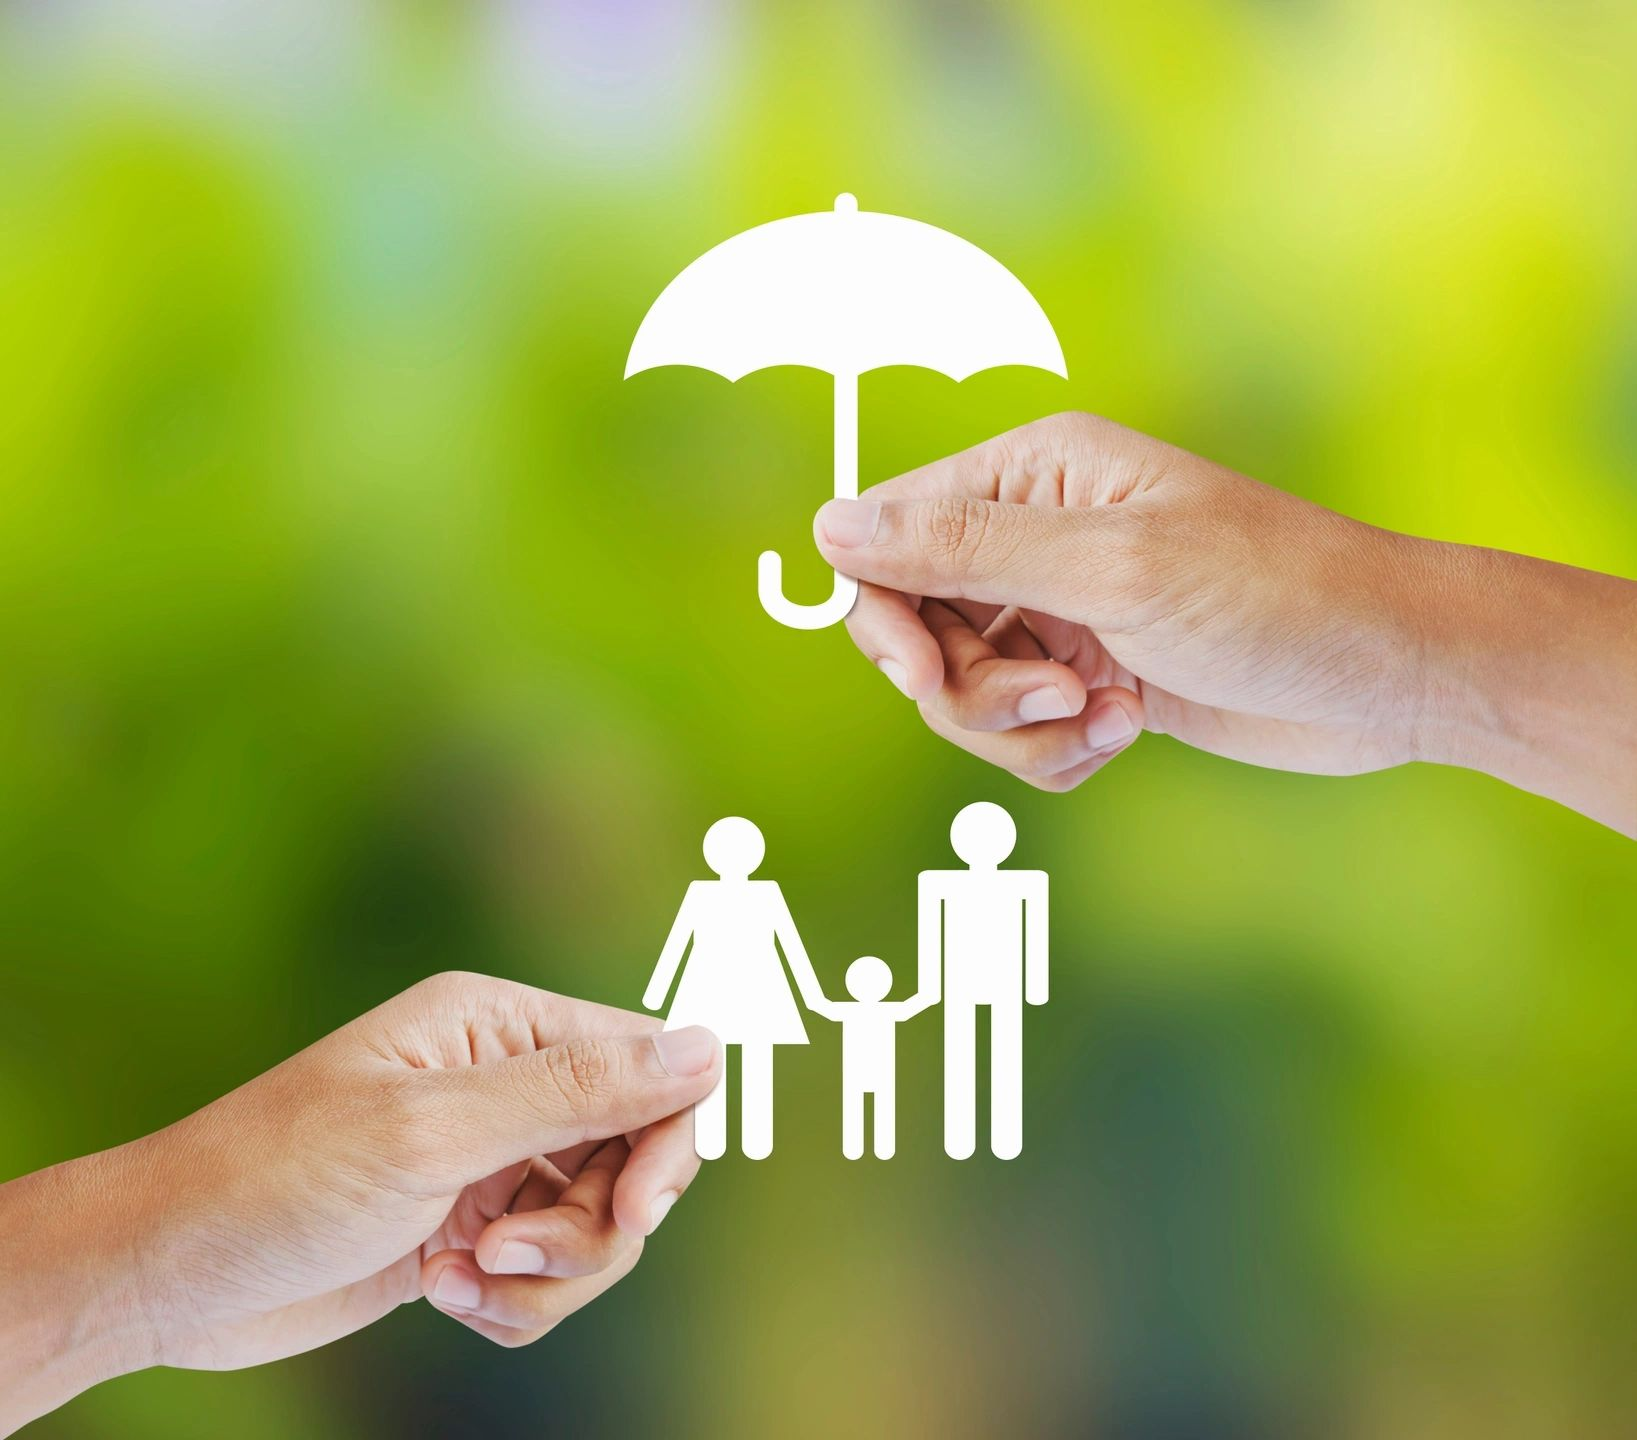 umbrella insurance, umbrella, extra protections, family insurance, extra coverage